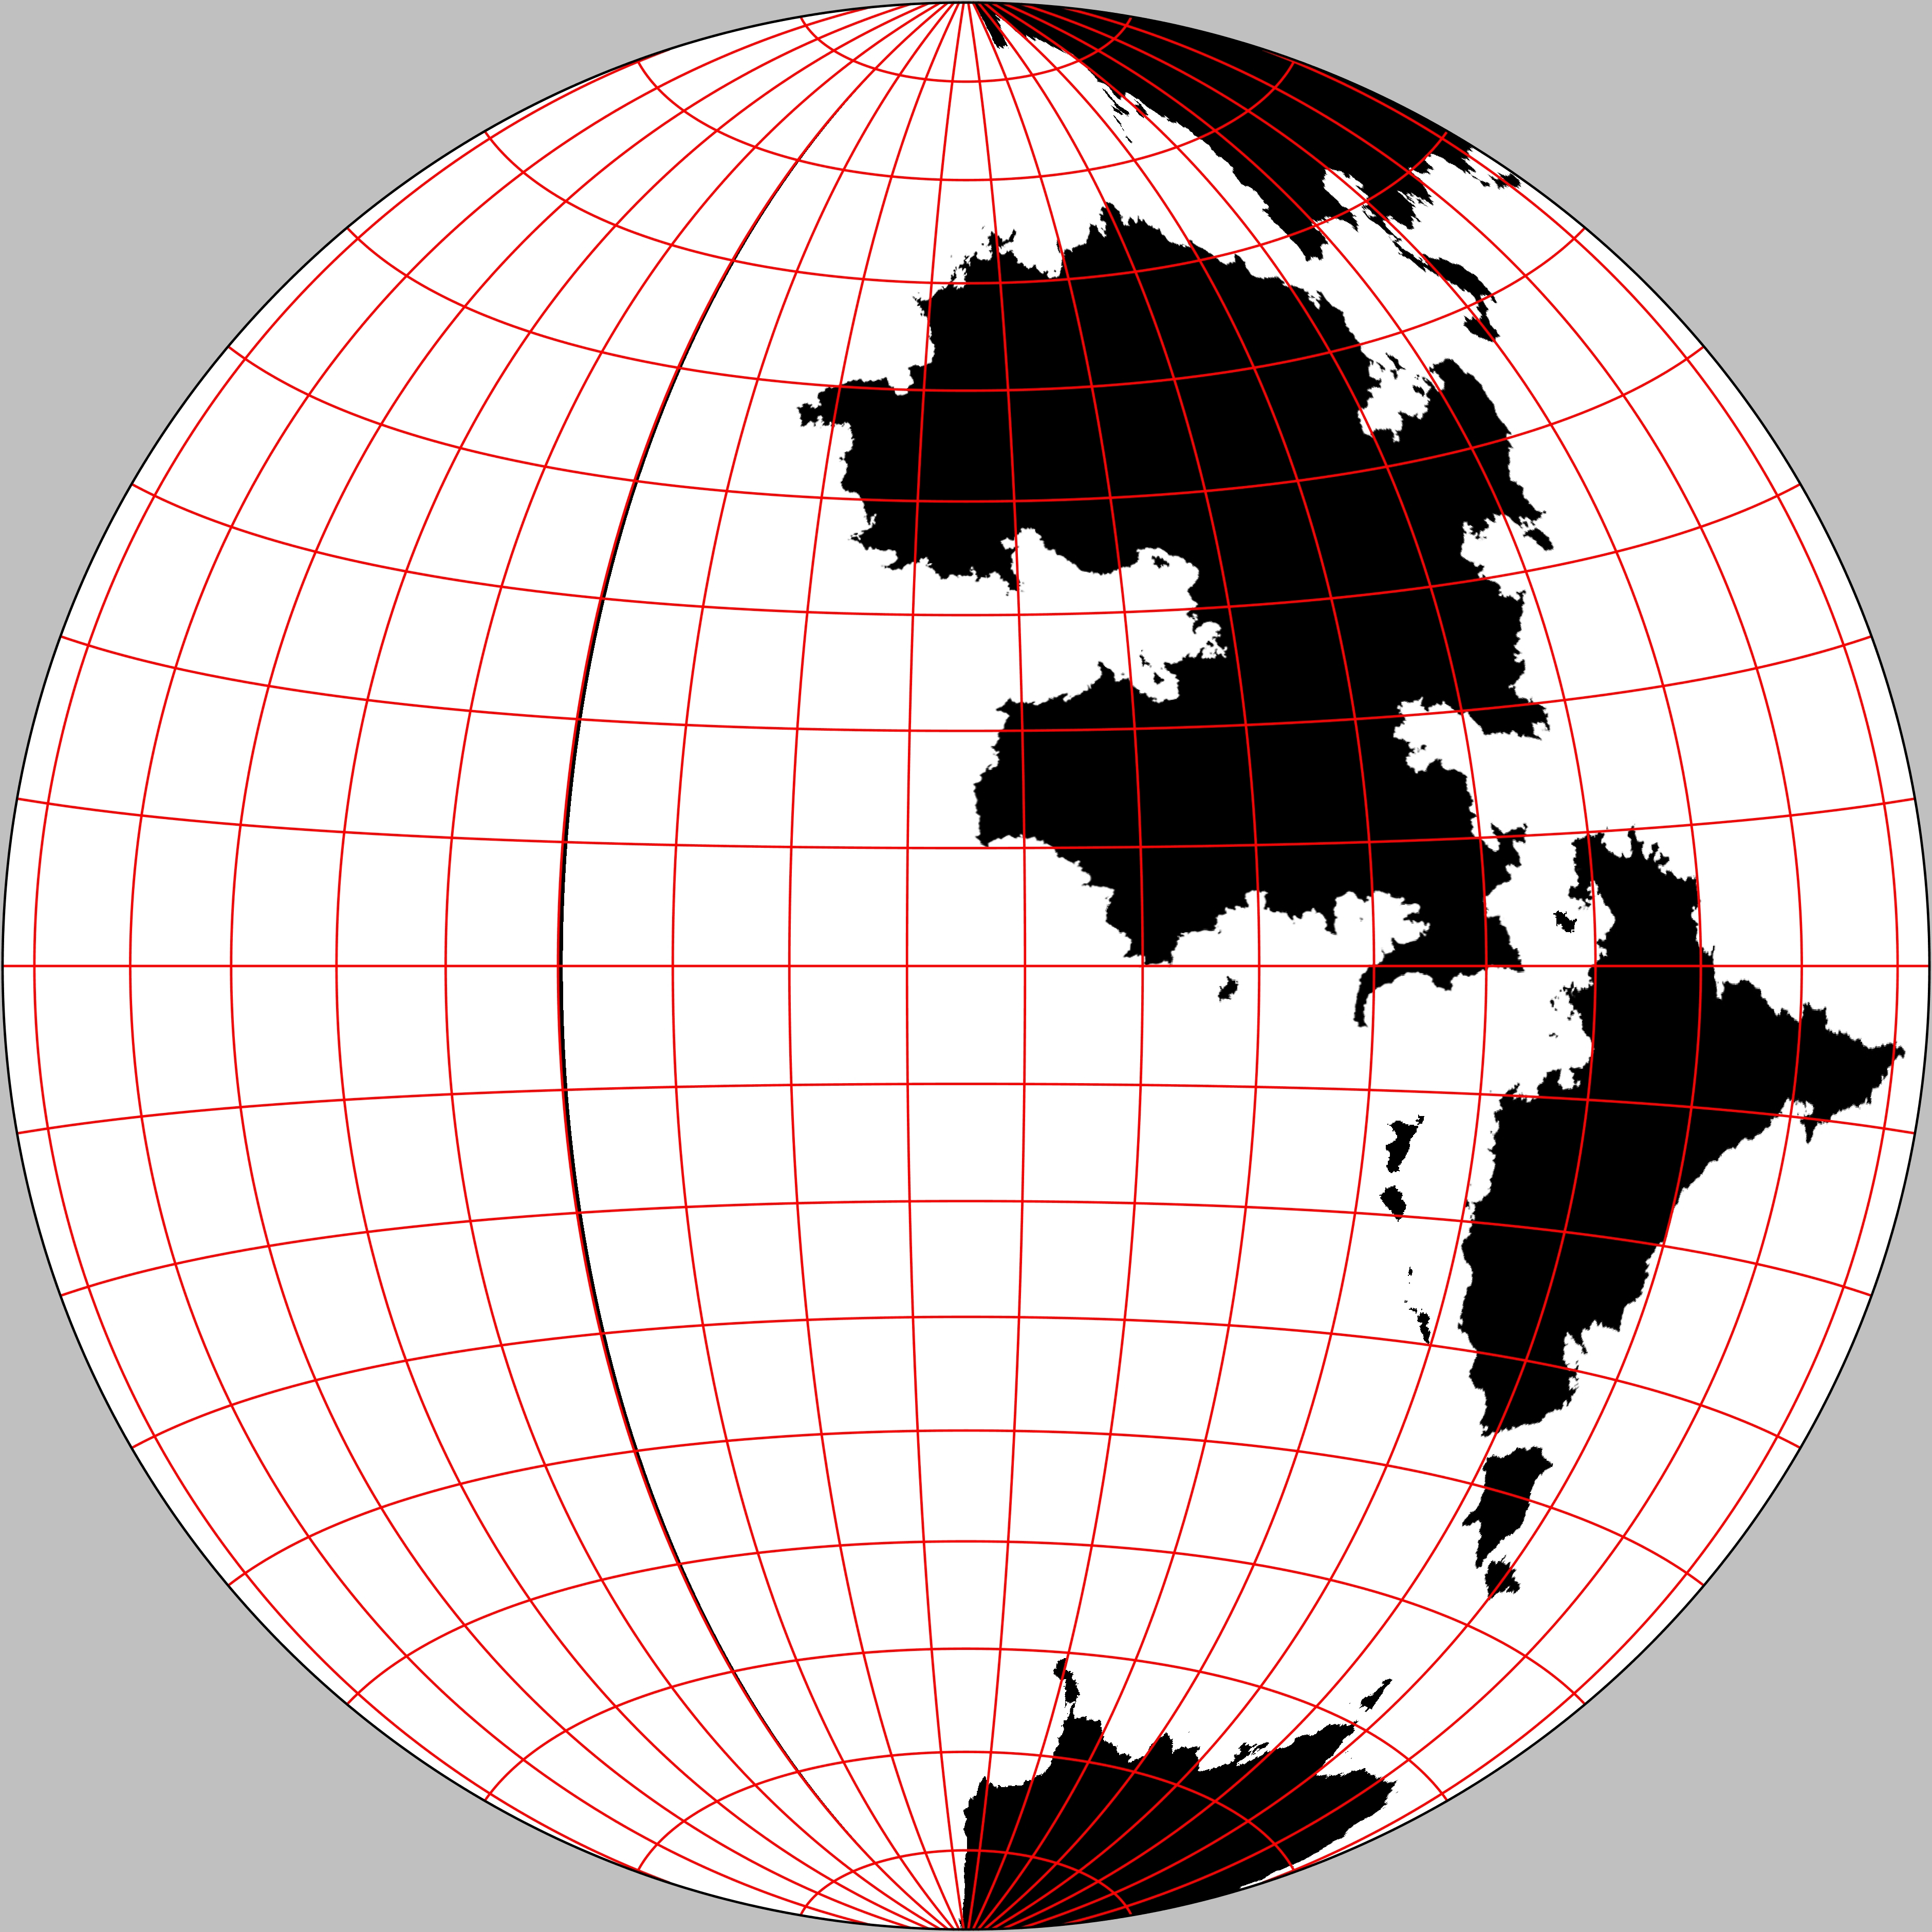 The western hemisphere of The Known World. Gott-Mugnolo Azimuthal projection.